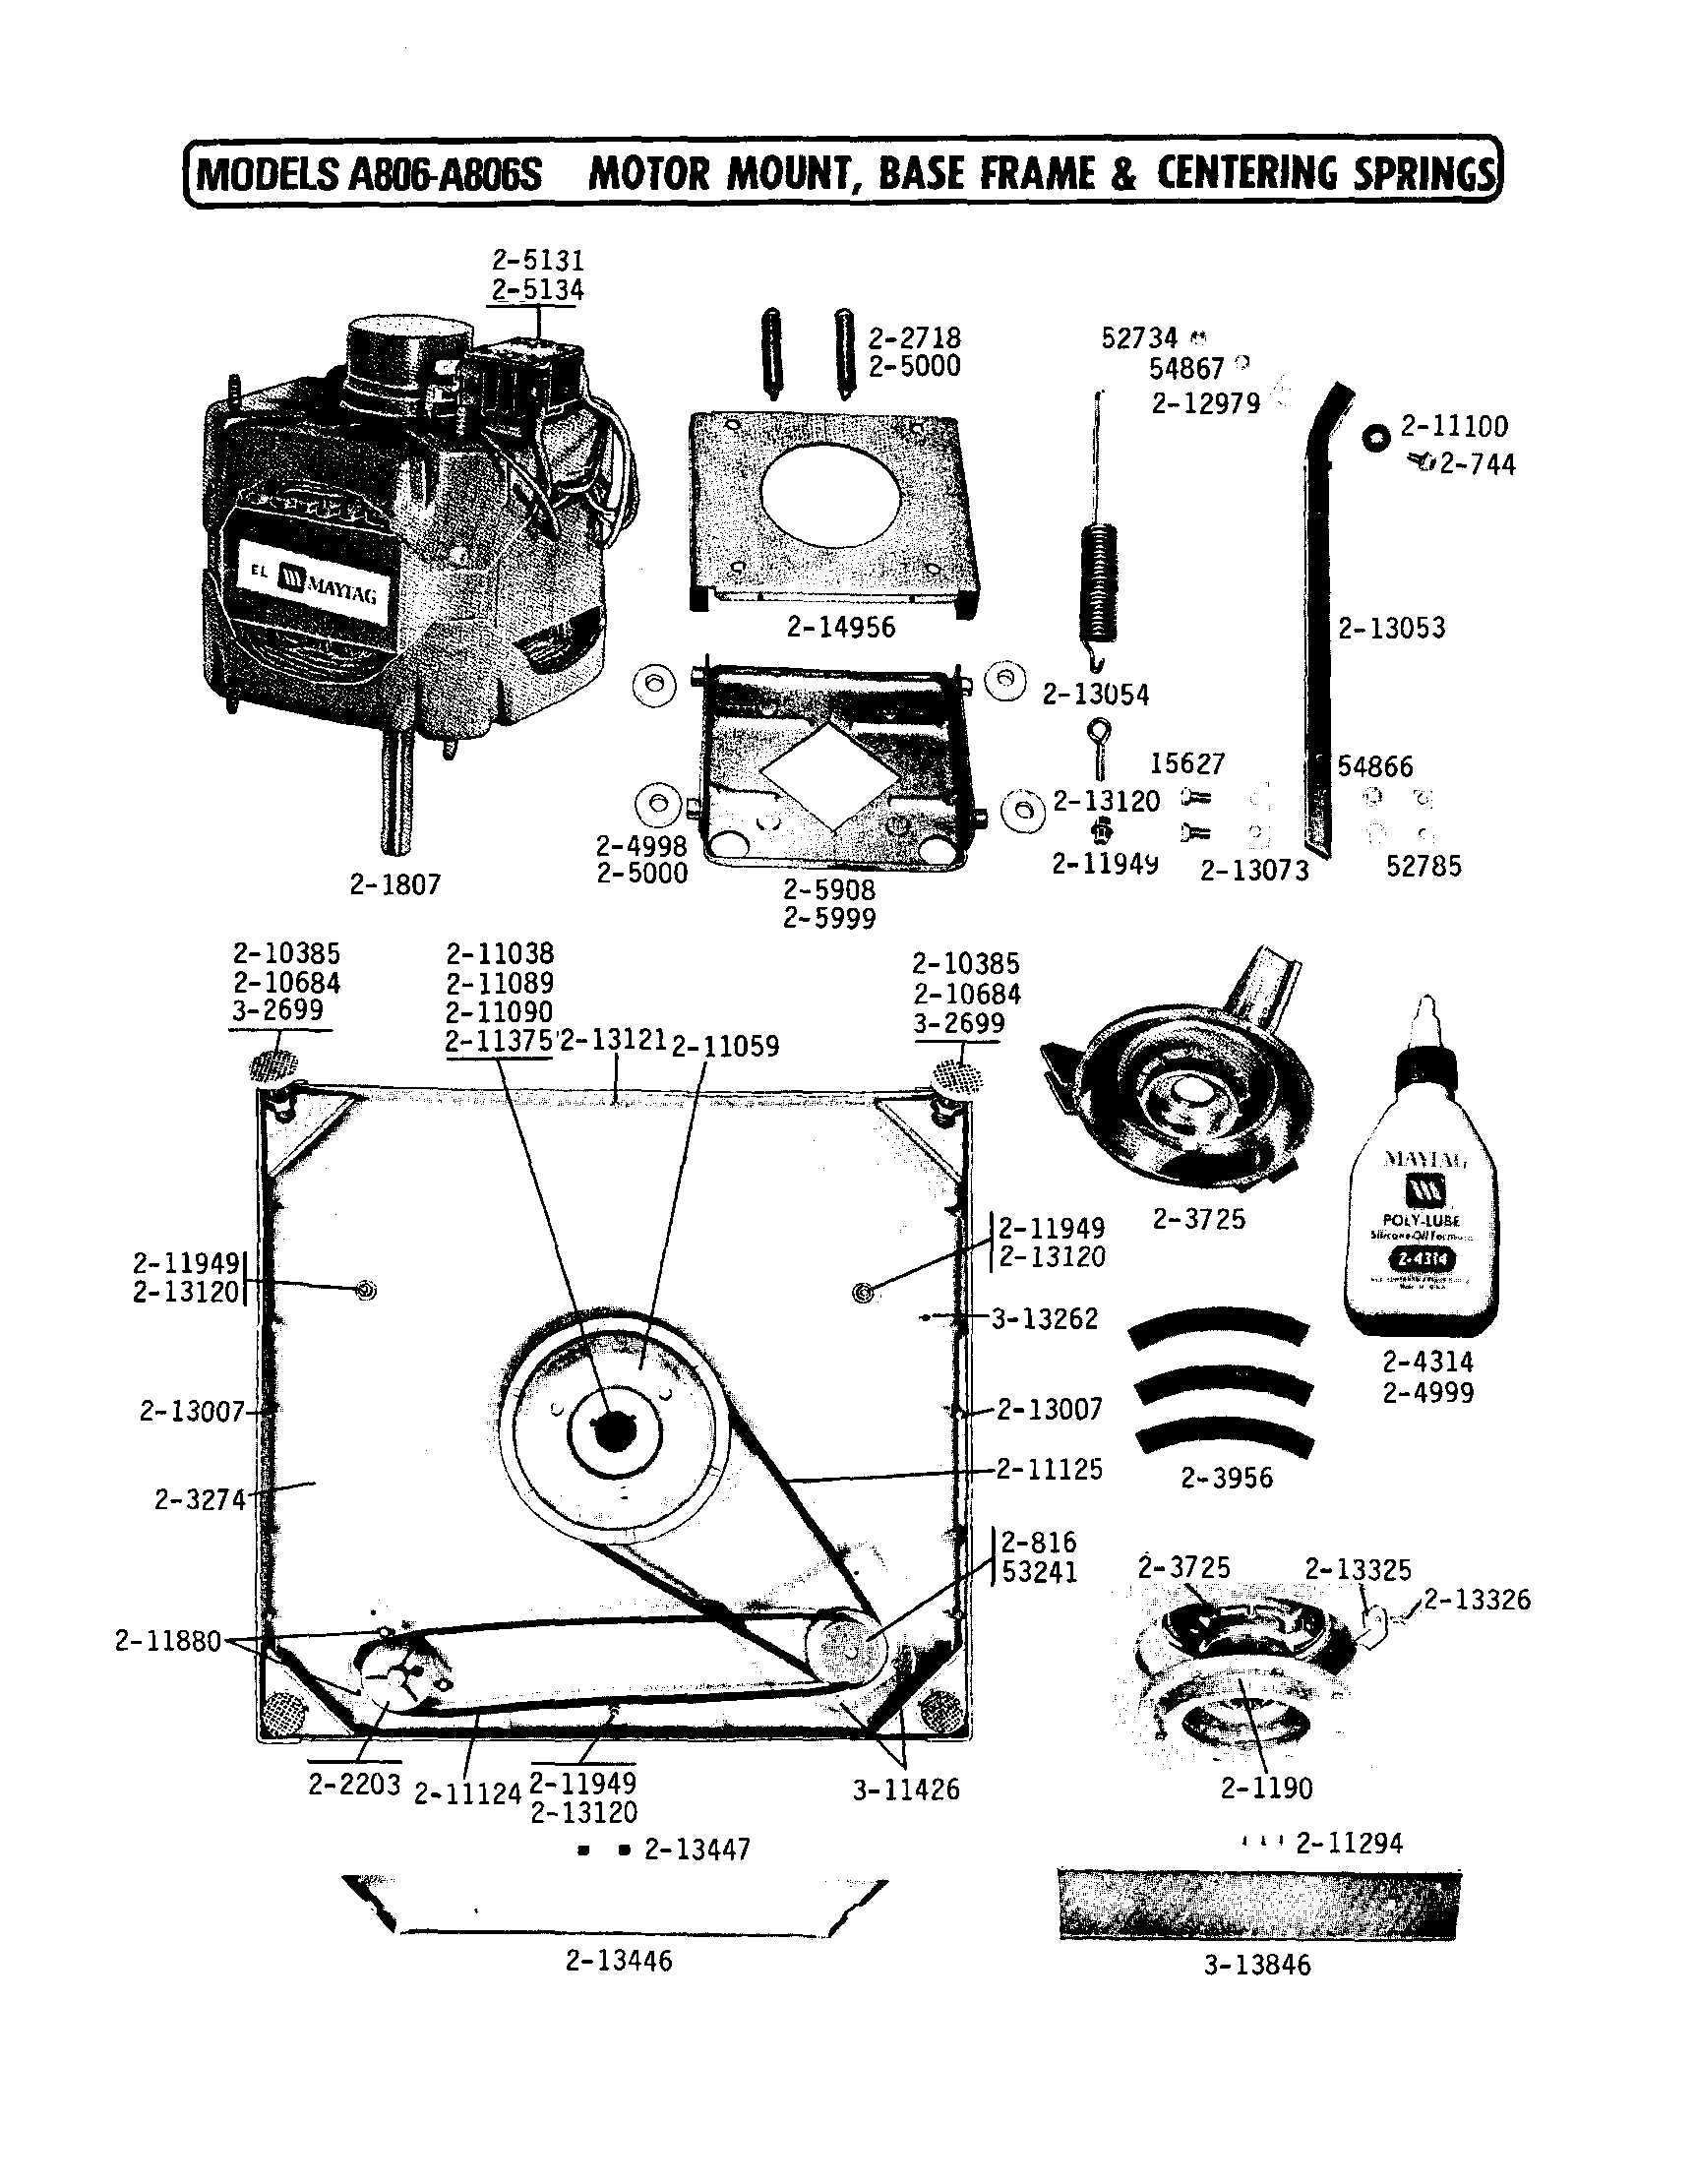 motor mount parts maytag a806 timer stove clocks and appliance timers clothes washer motor wiring diagram at soozxer.org